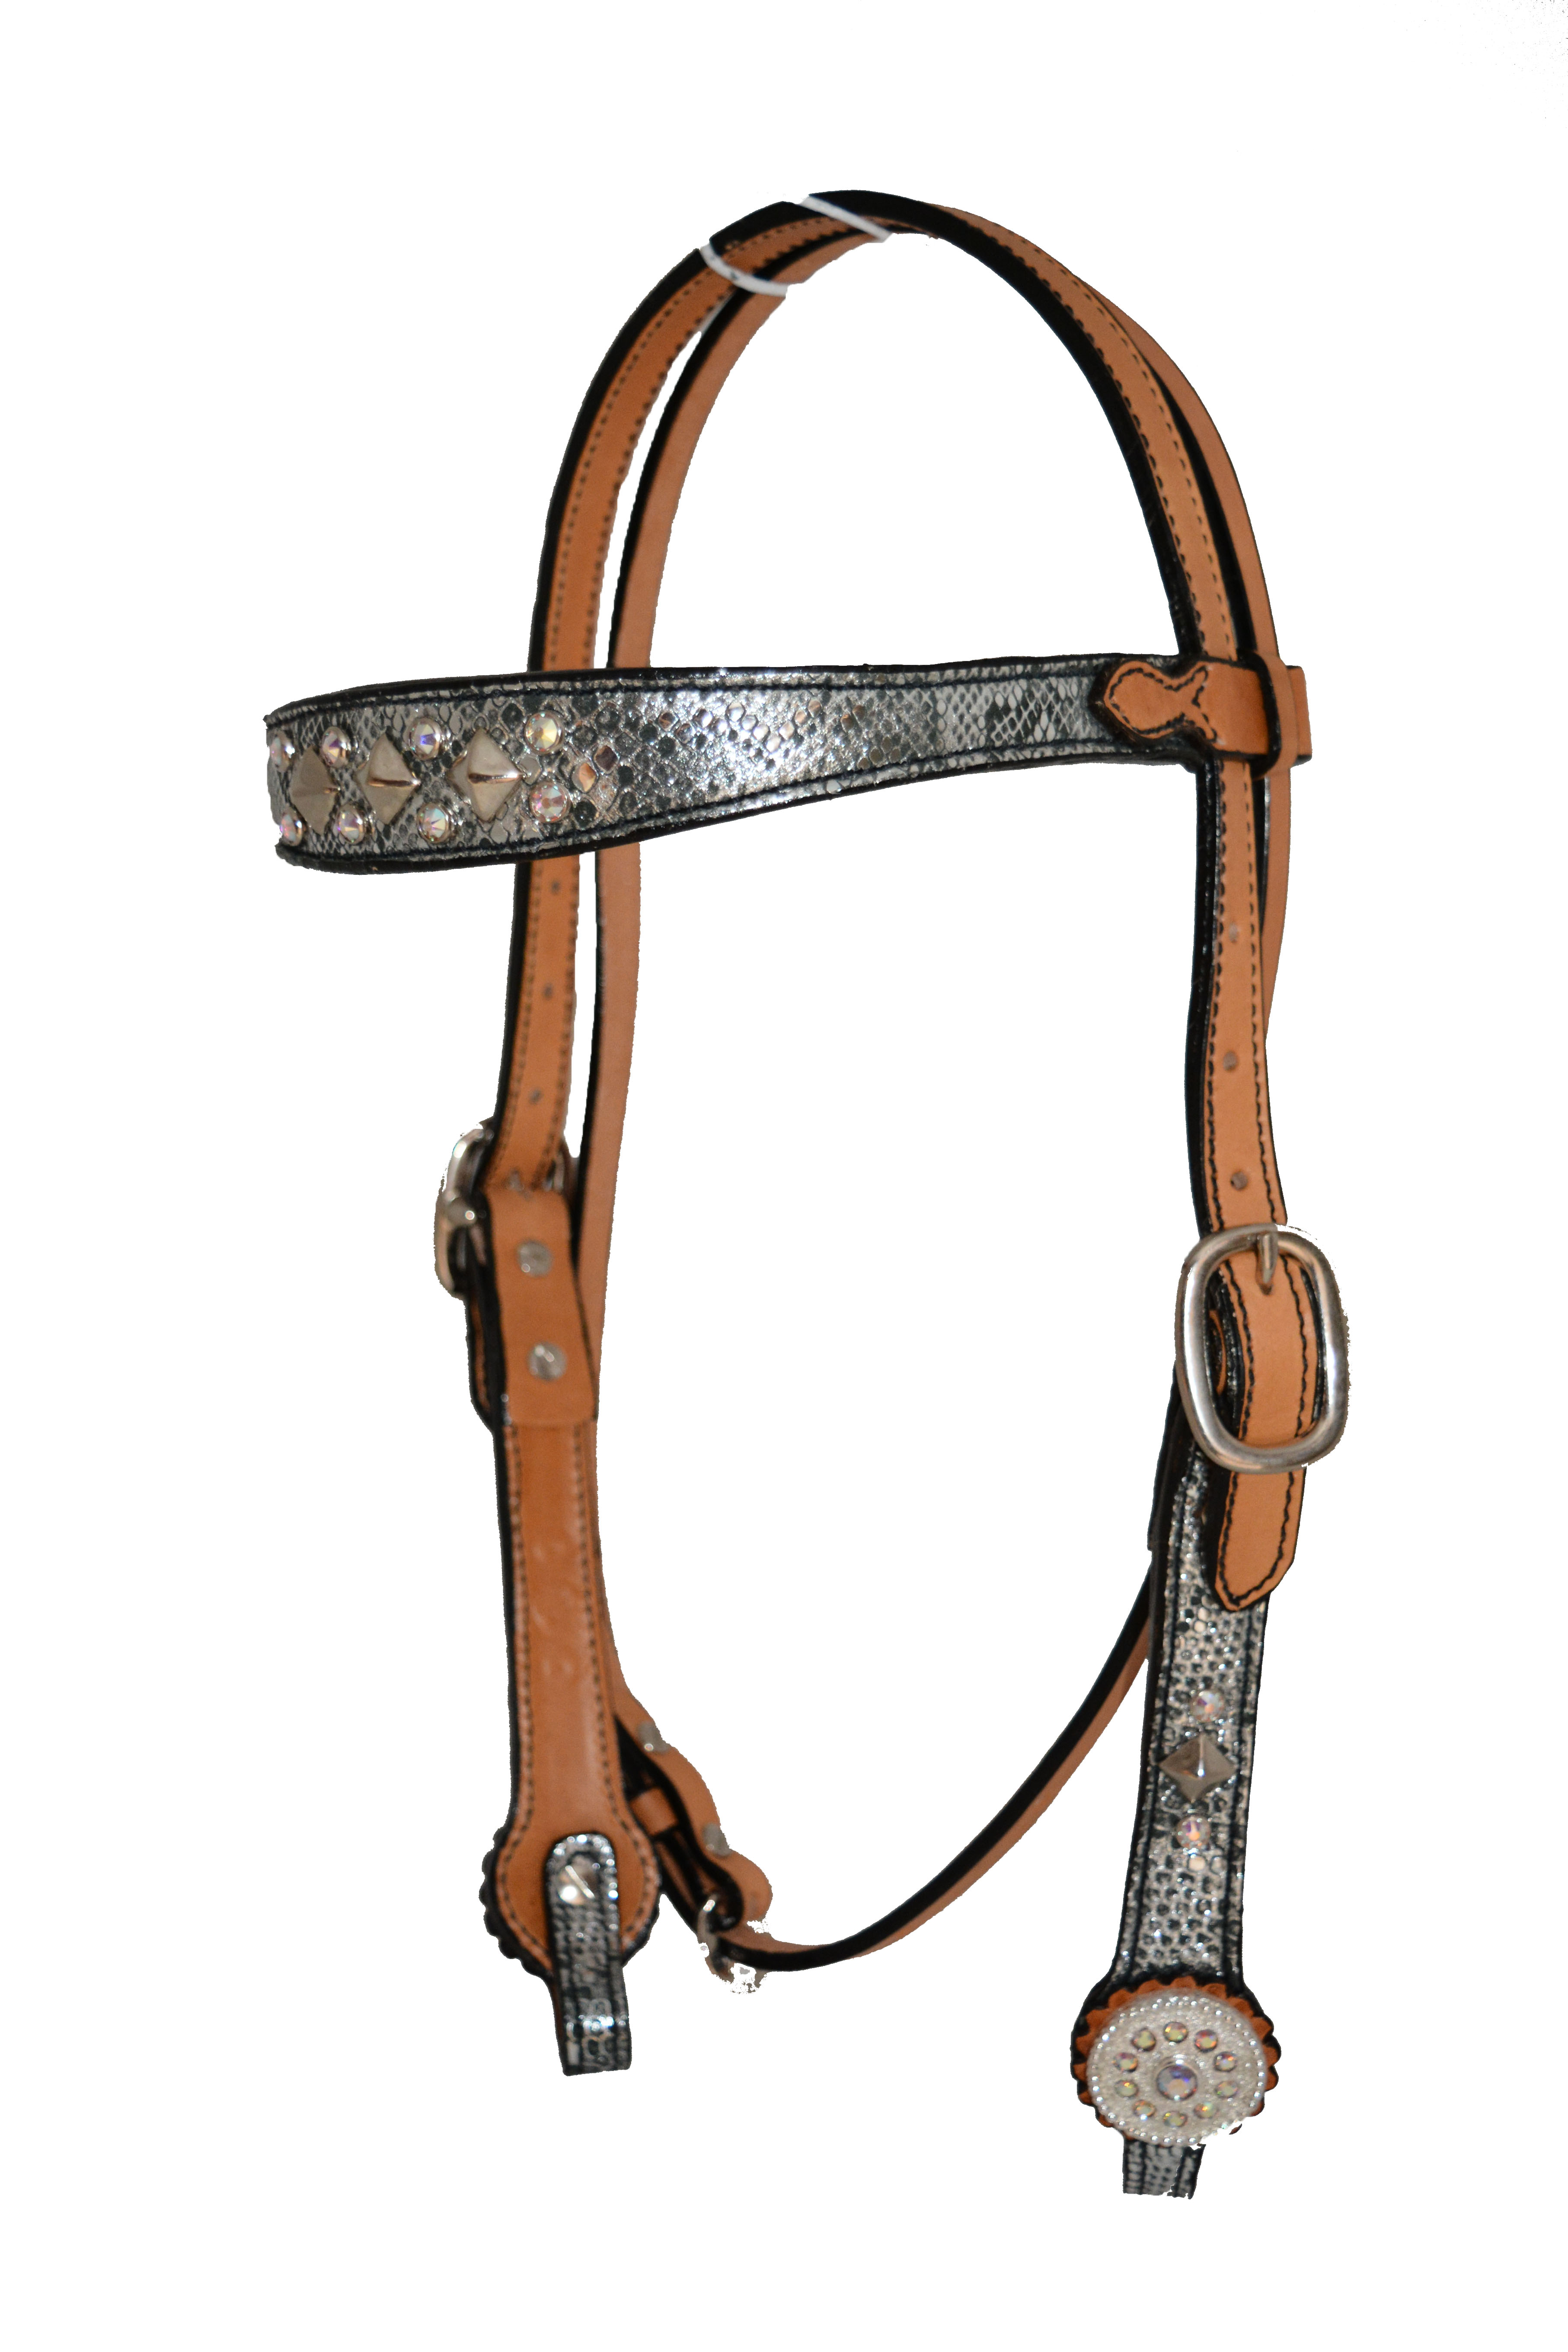 2800-GPS CONTOURED BROW HEADSTALL W SILVER PYTHON OVERLAY, SPOTS, CRYSTALS & CONCHOS (PZM)